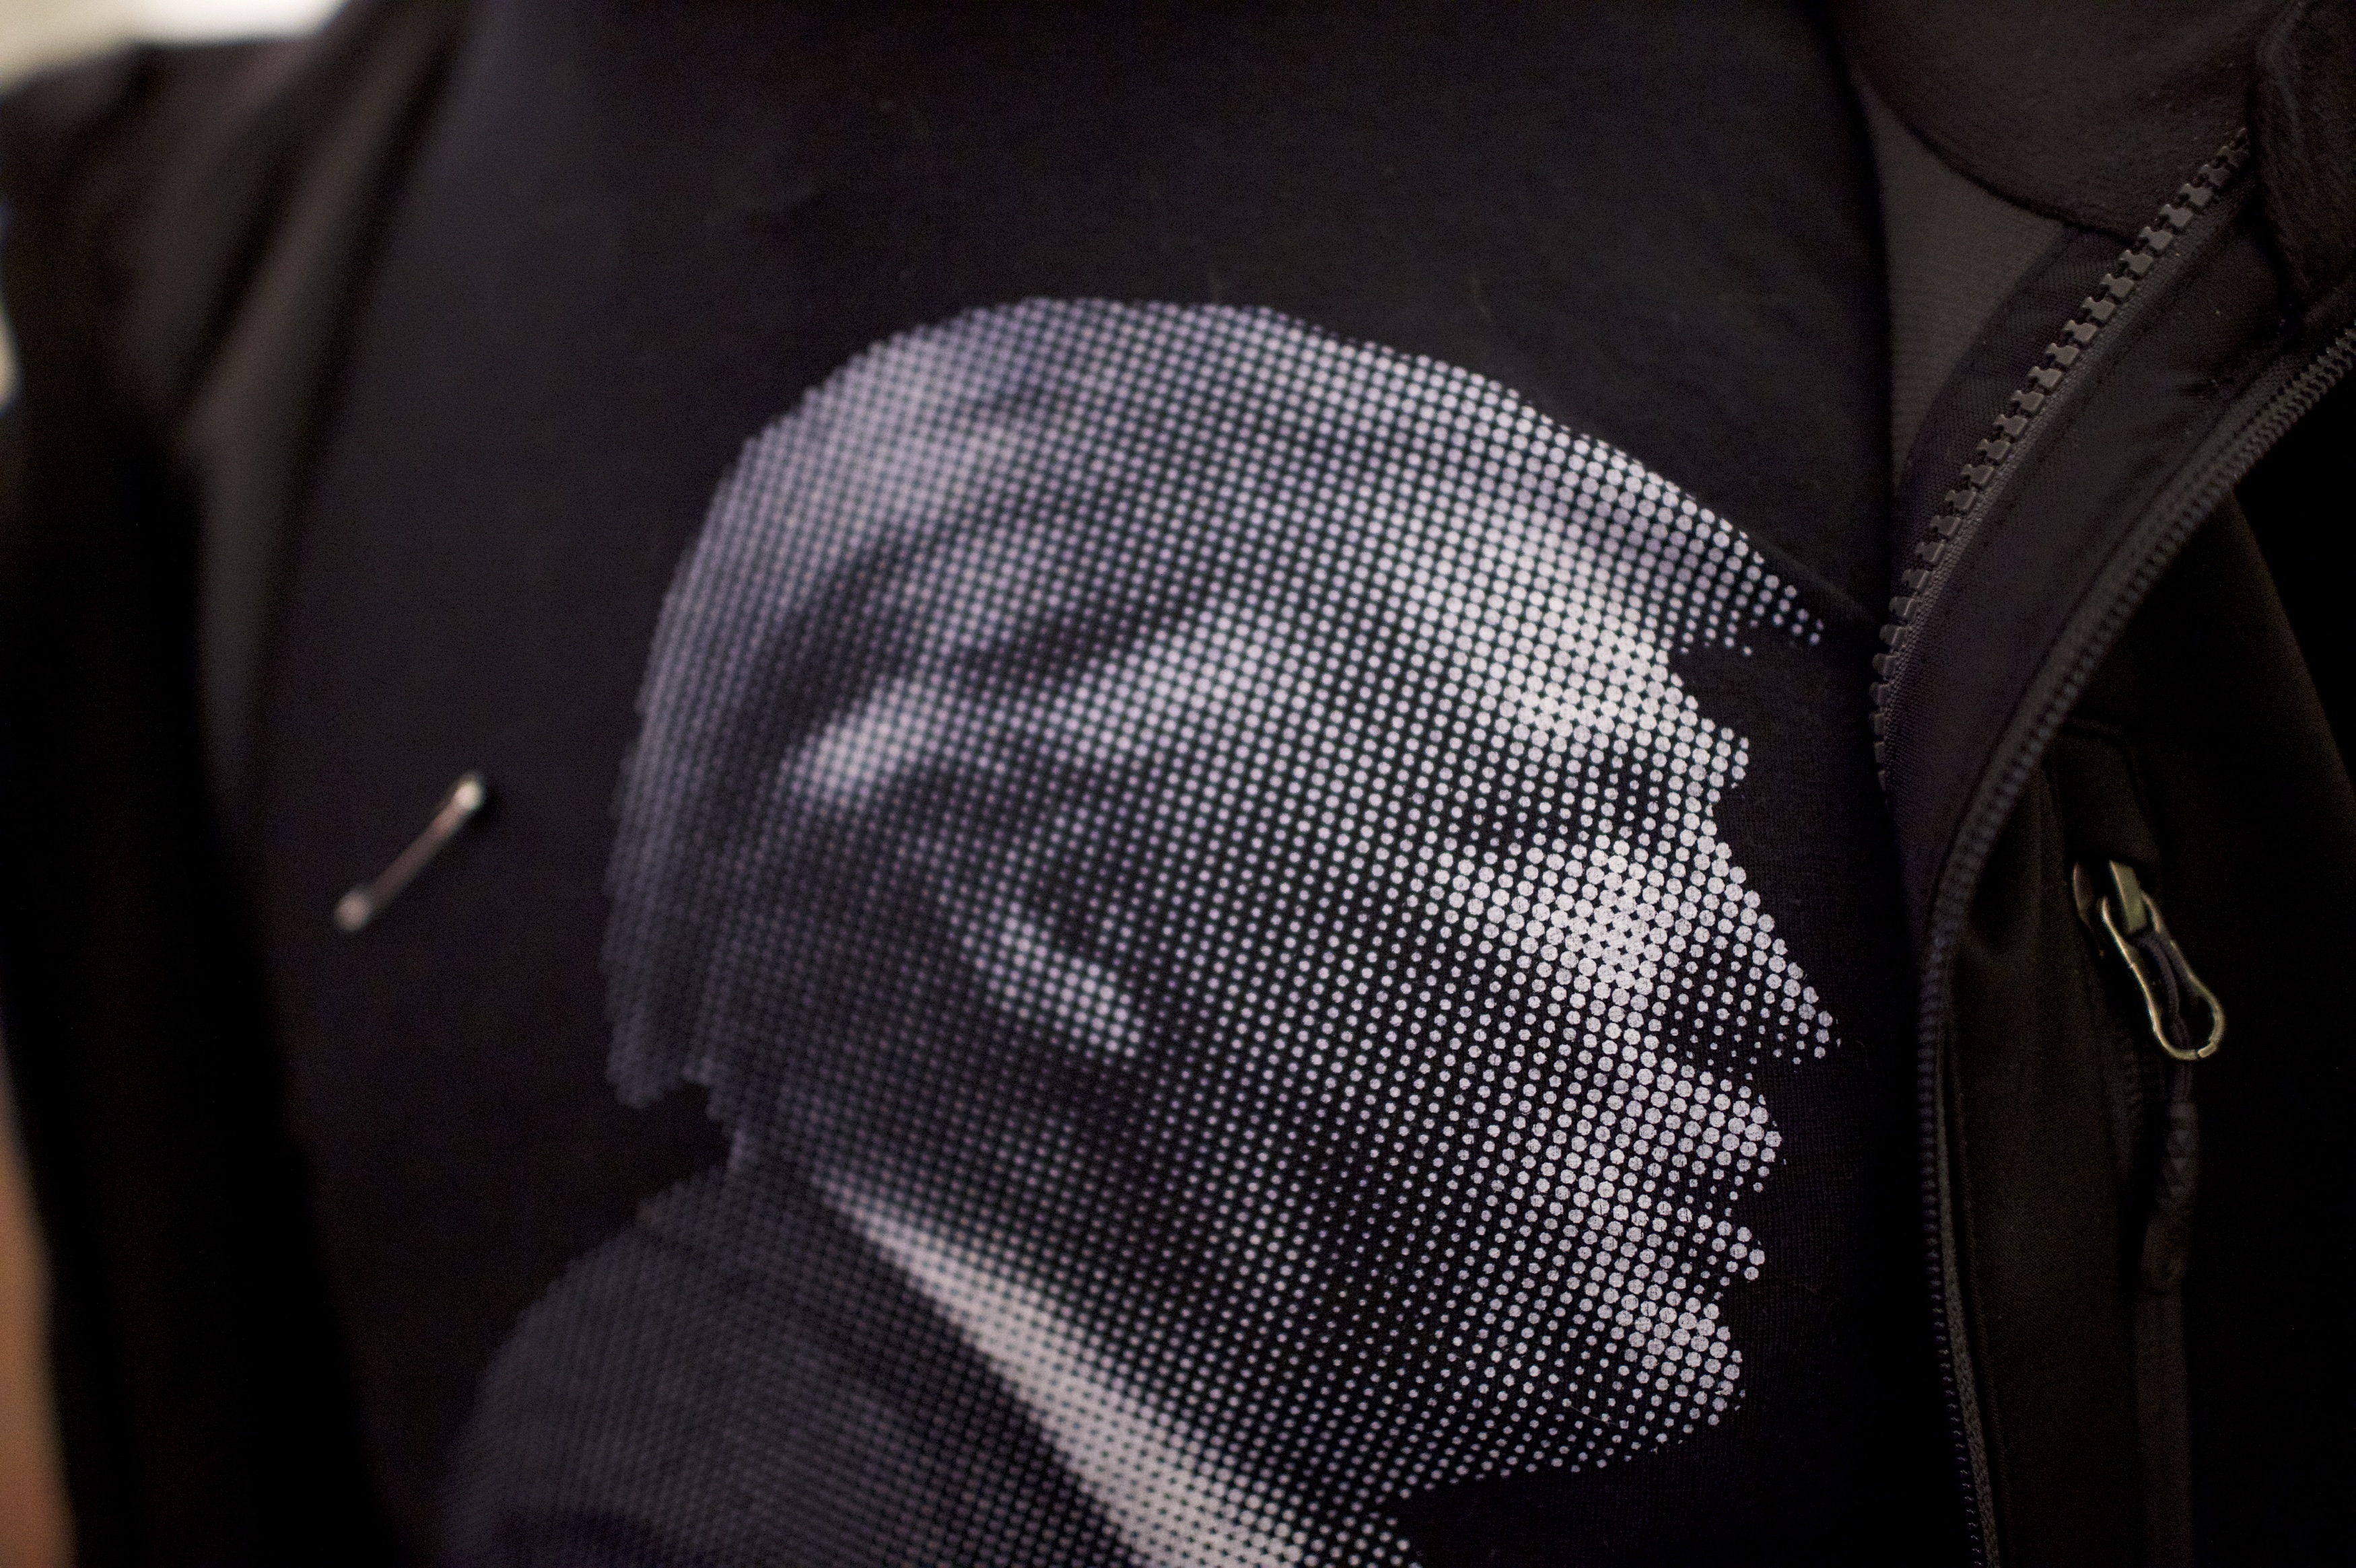 If you want to understand the age of Trump, read the Frankfurt School